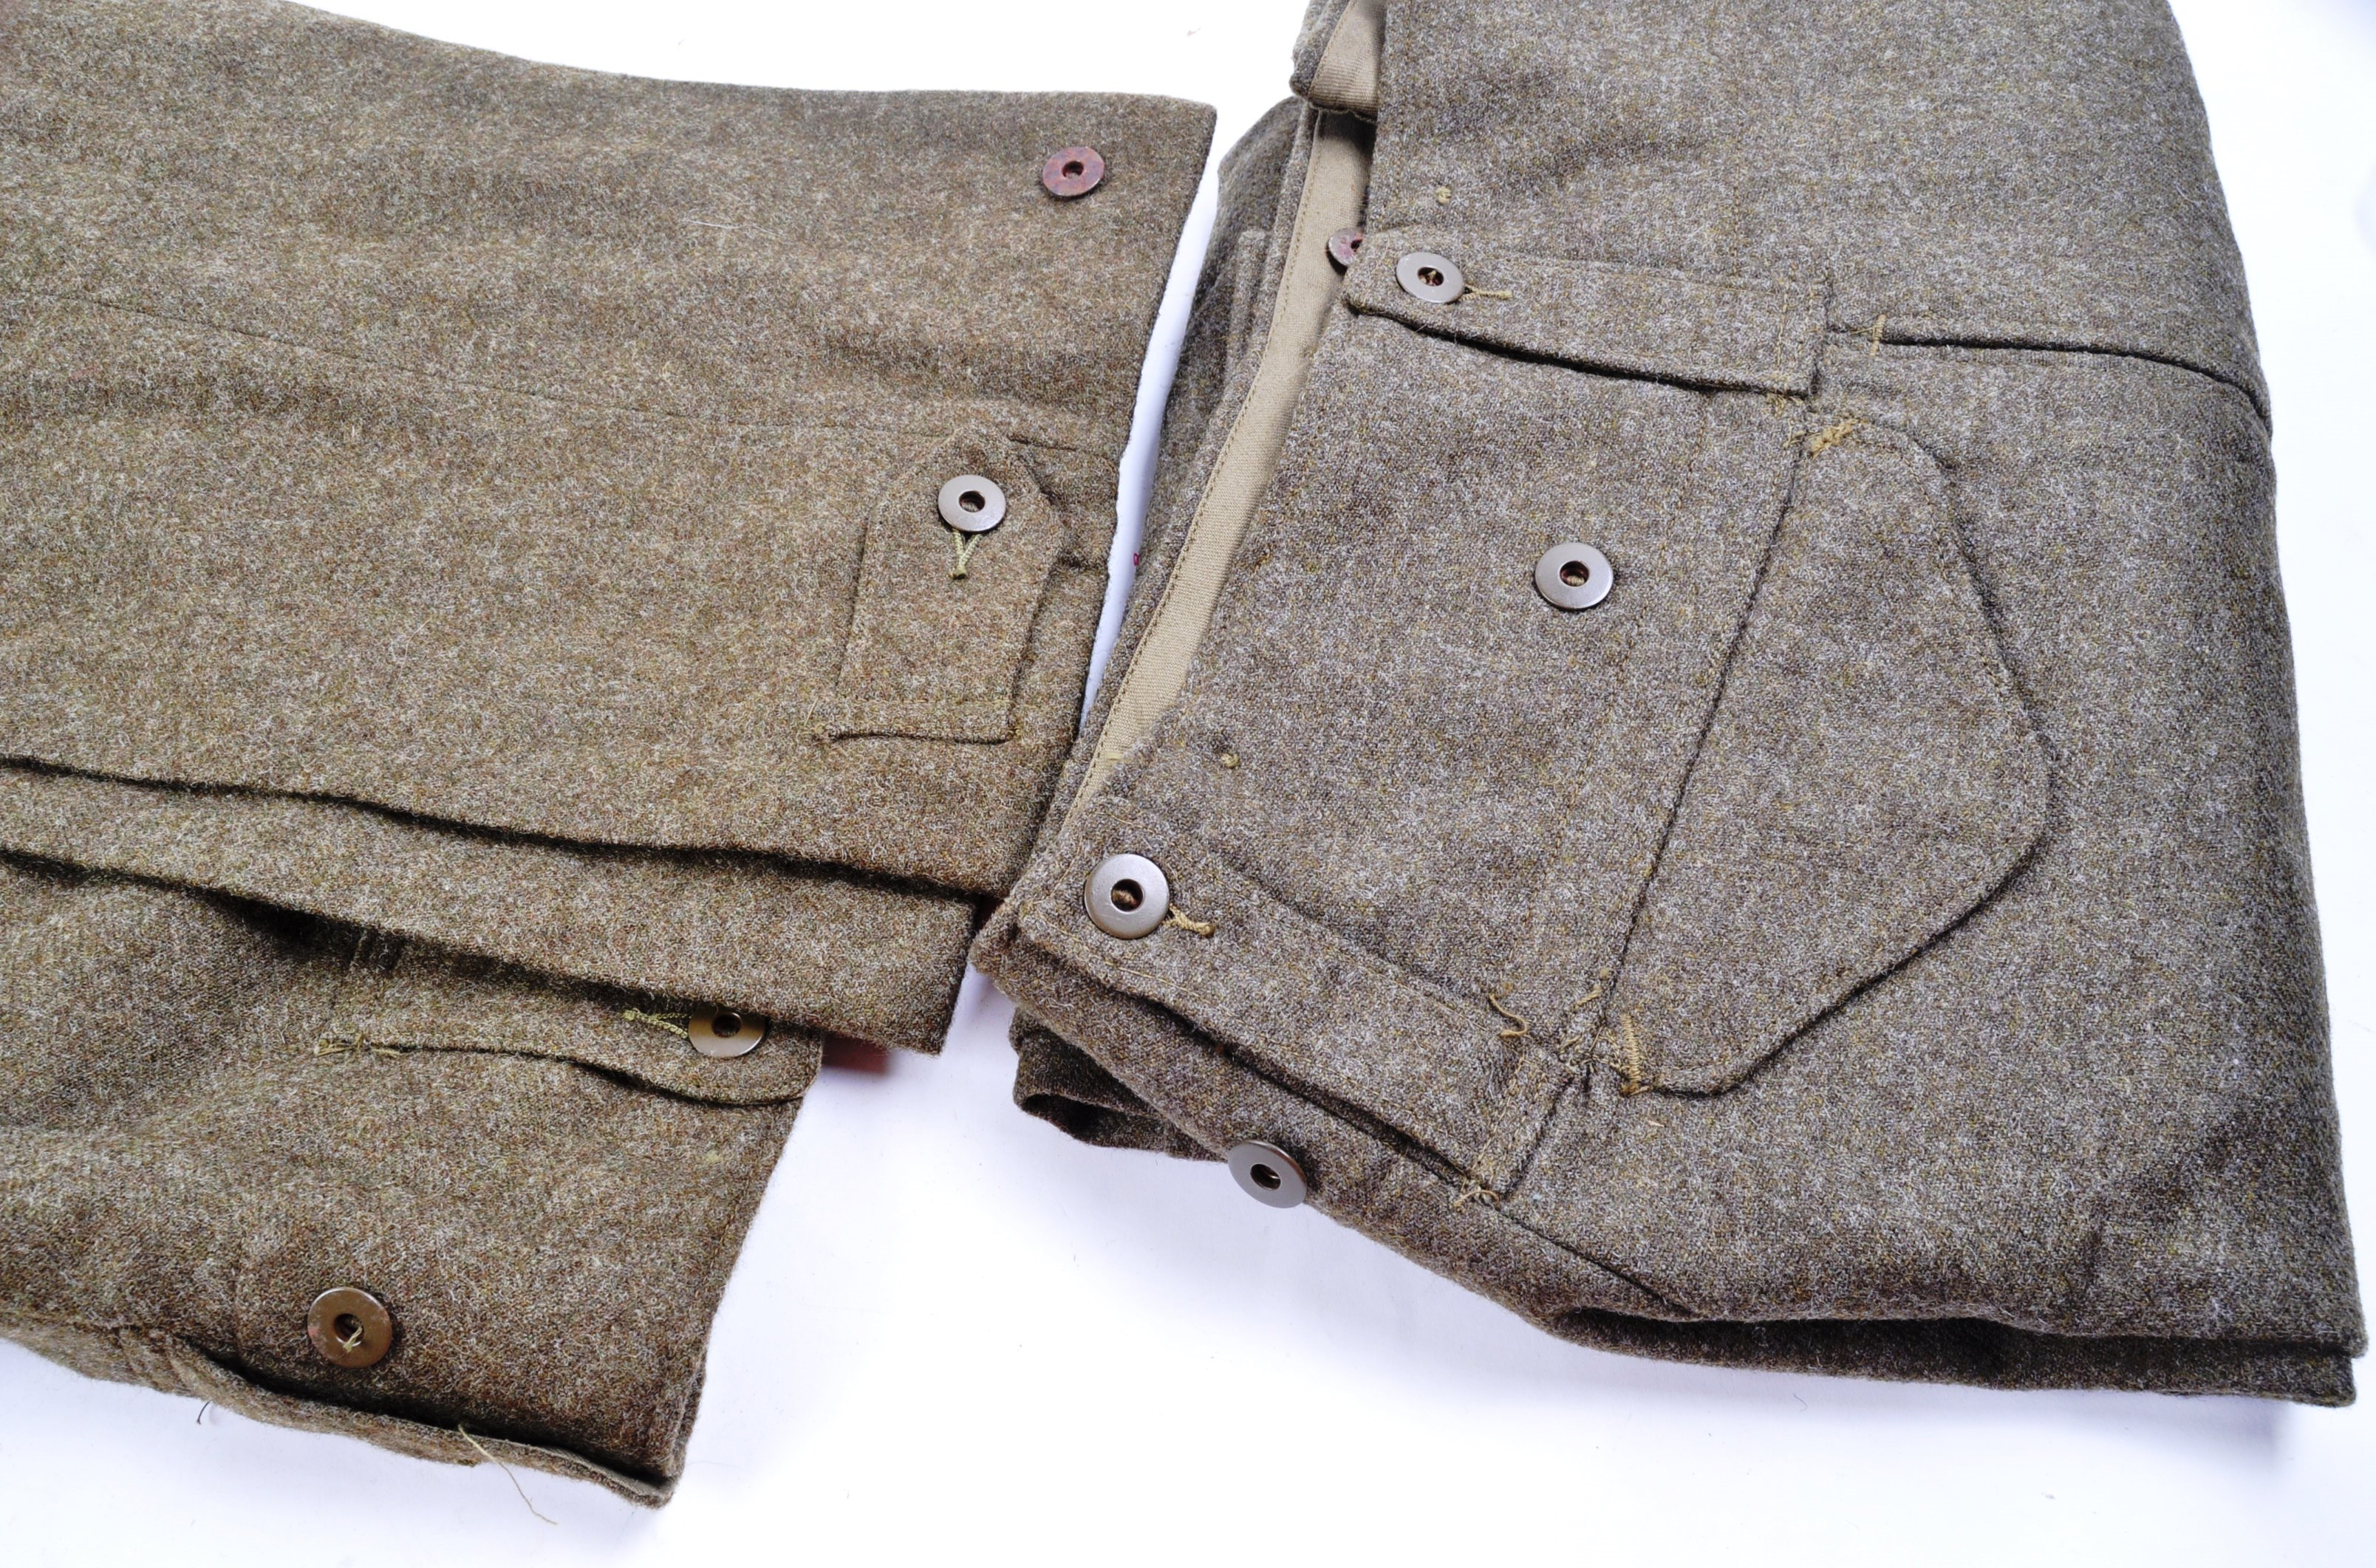 WWII SECOND WORLD WAR INTEREST - BRITISH ARMY TROUSERS - Image 6 of 7